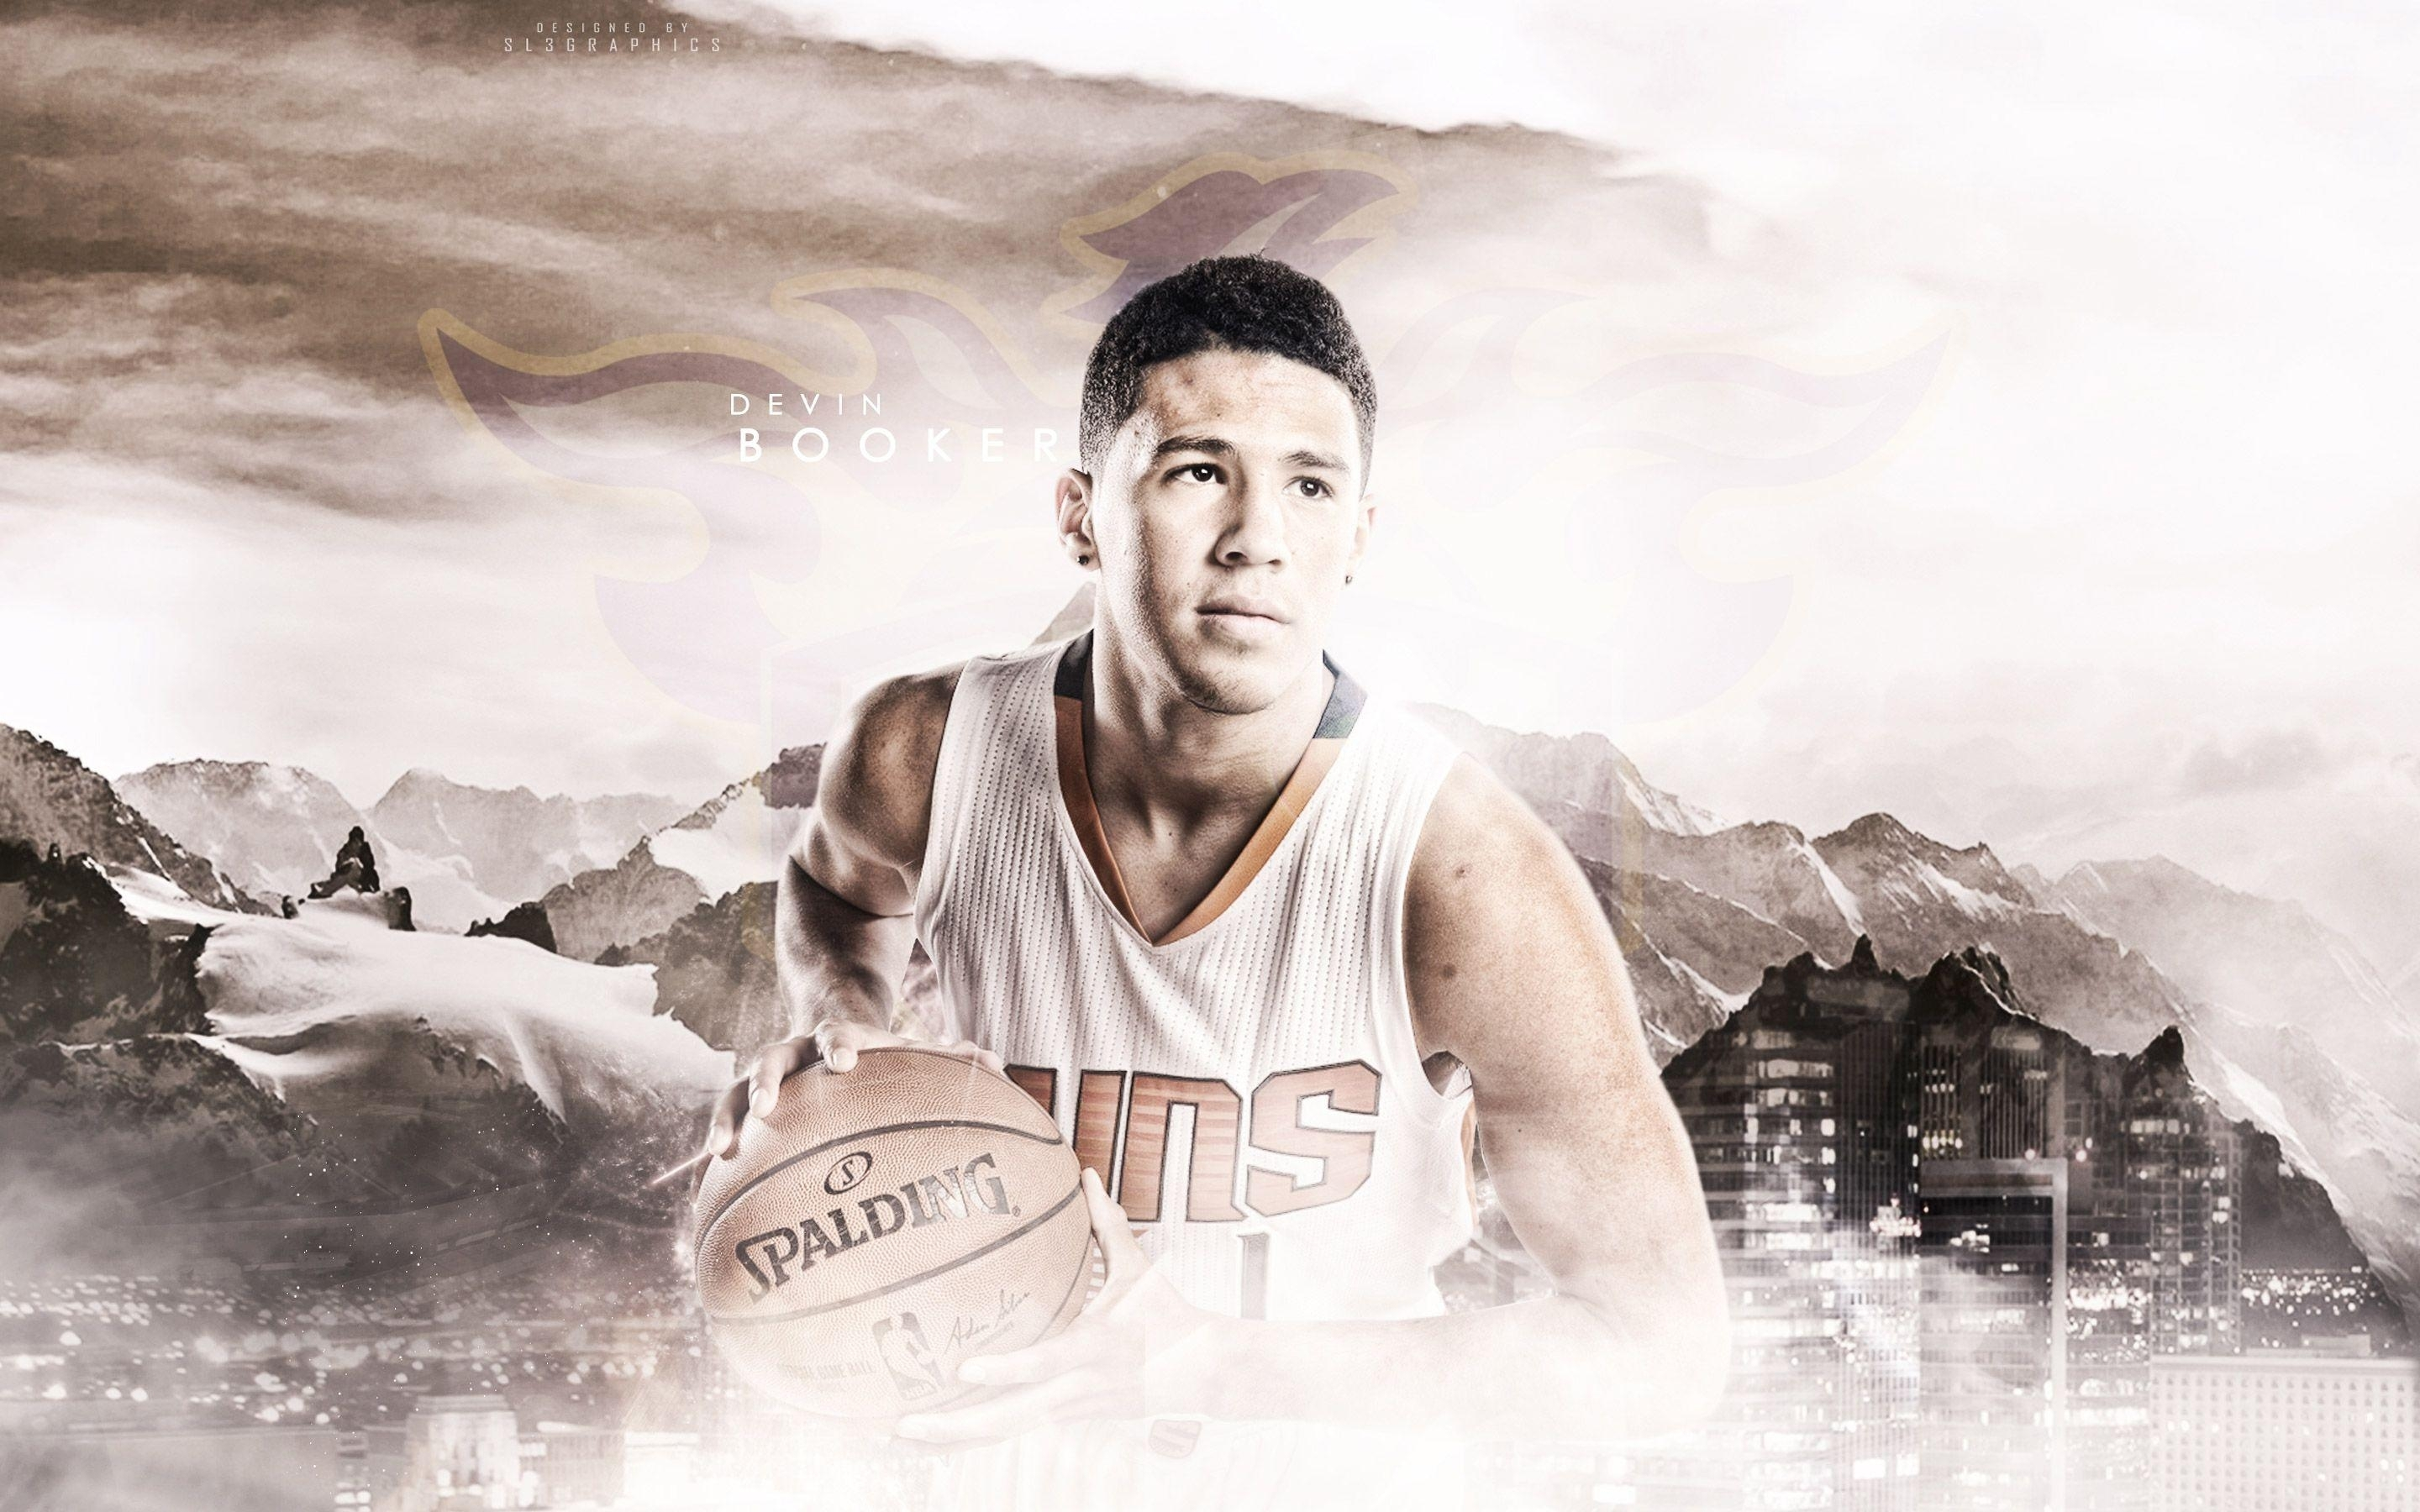 devin booker wallpapers - wallpaper cave